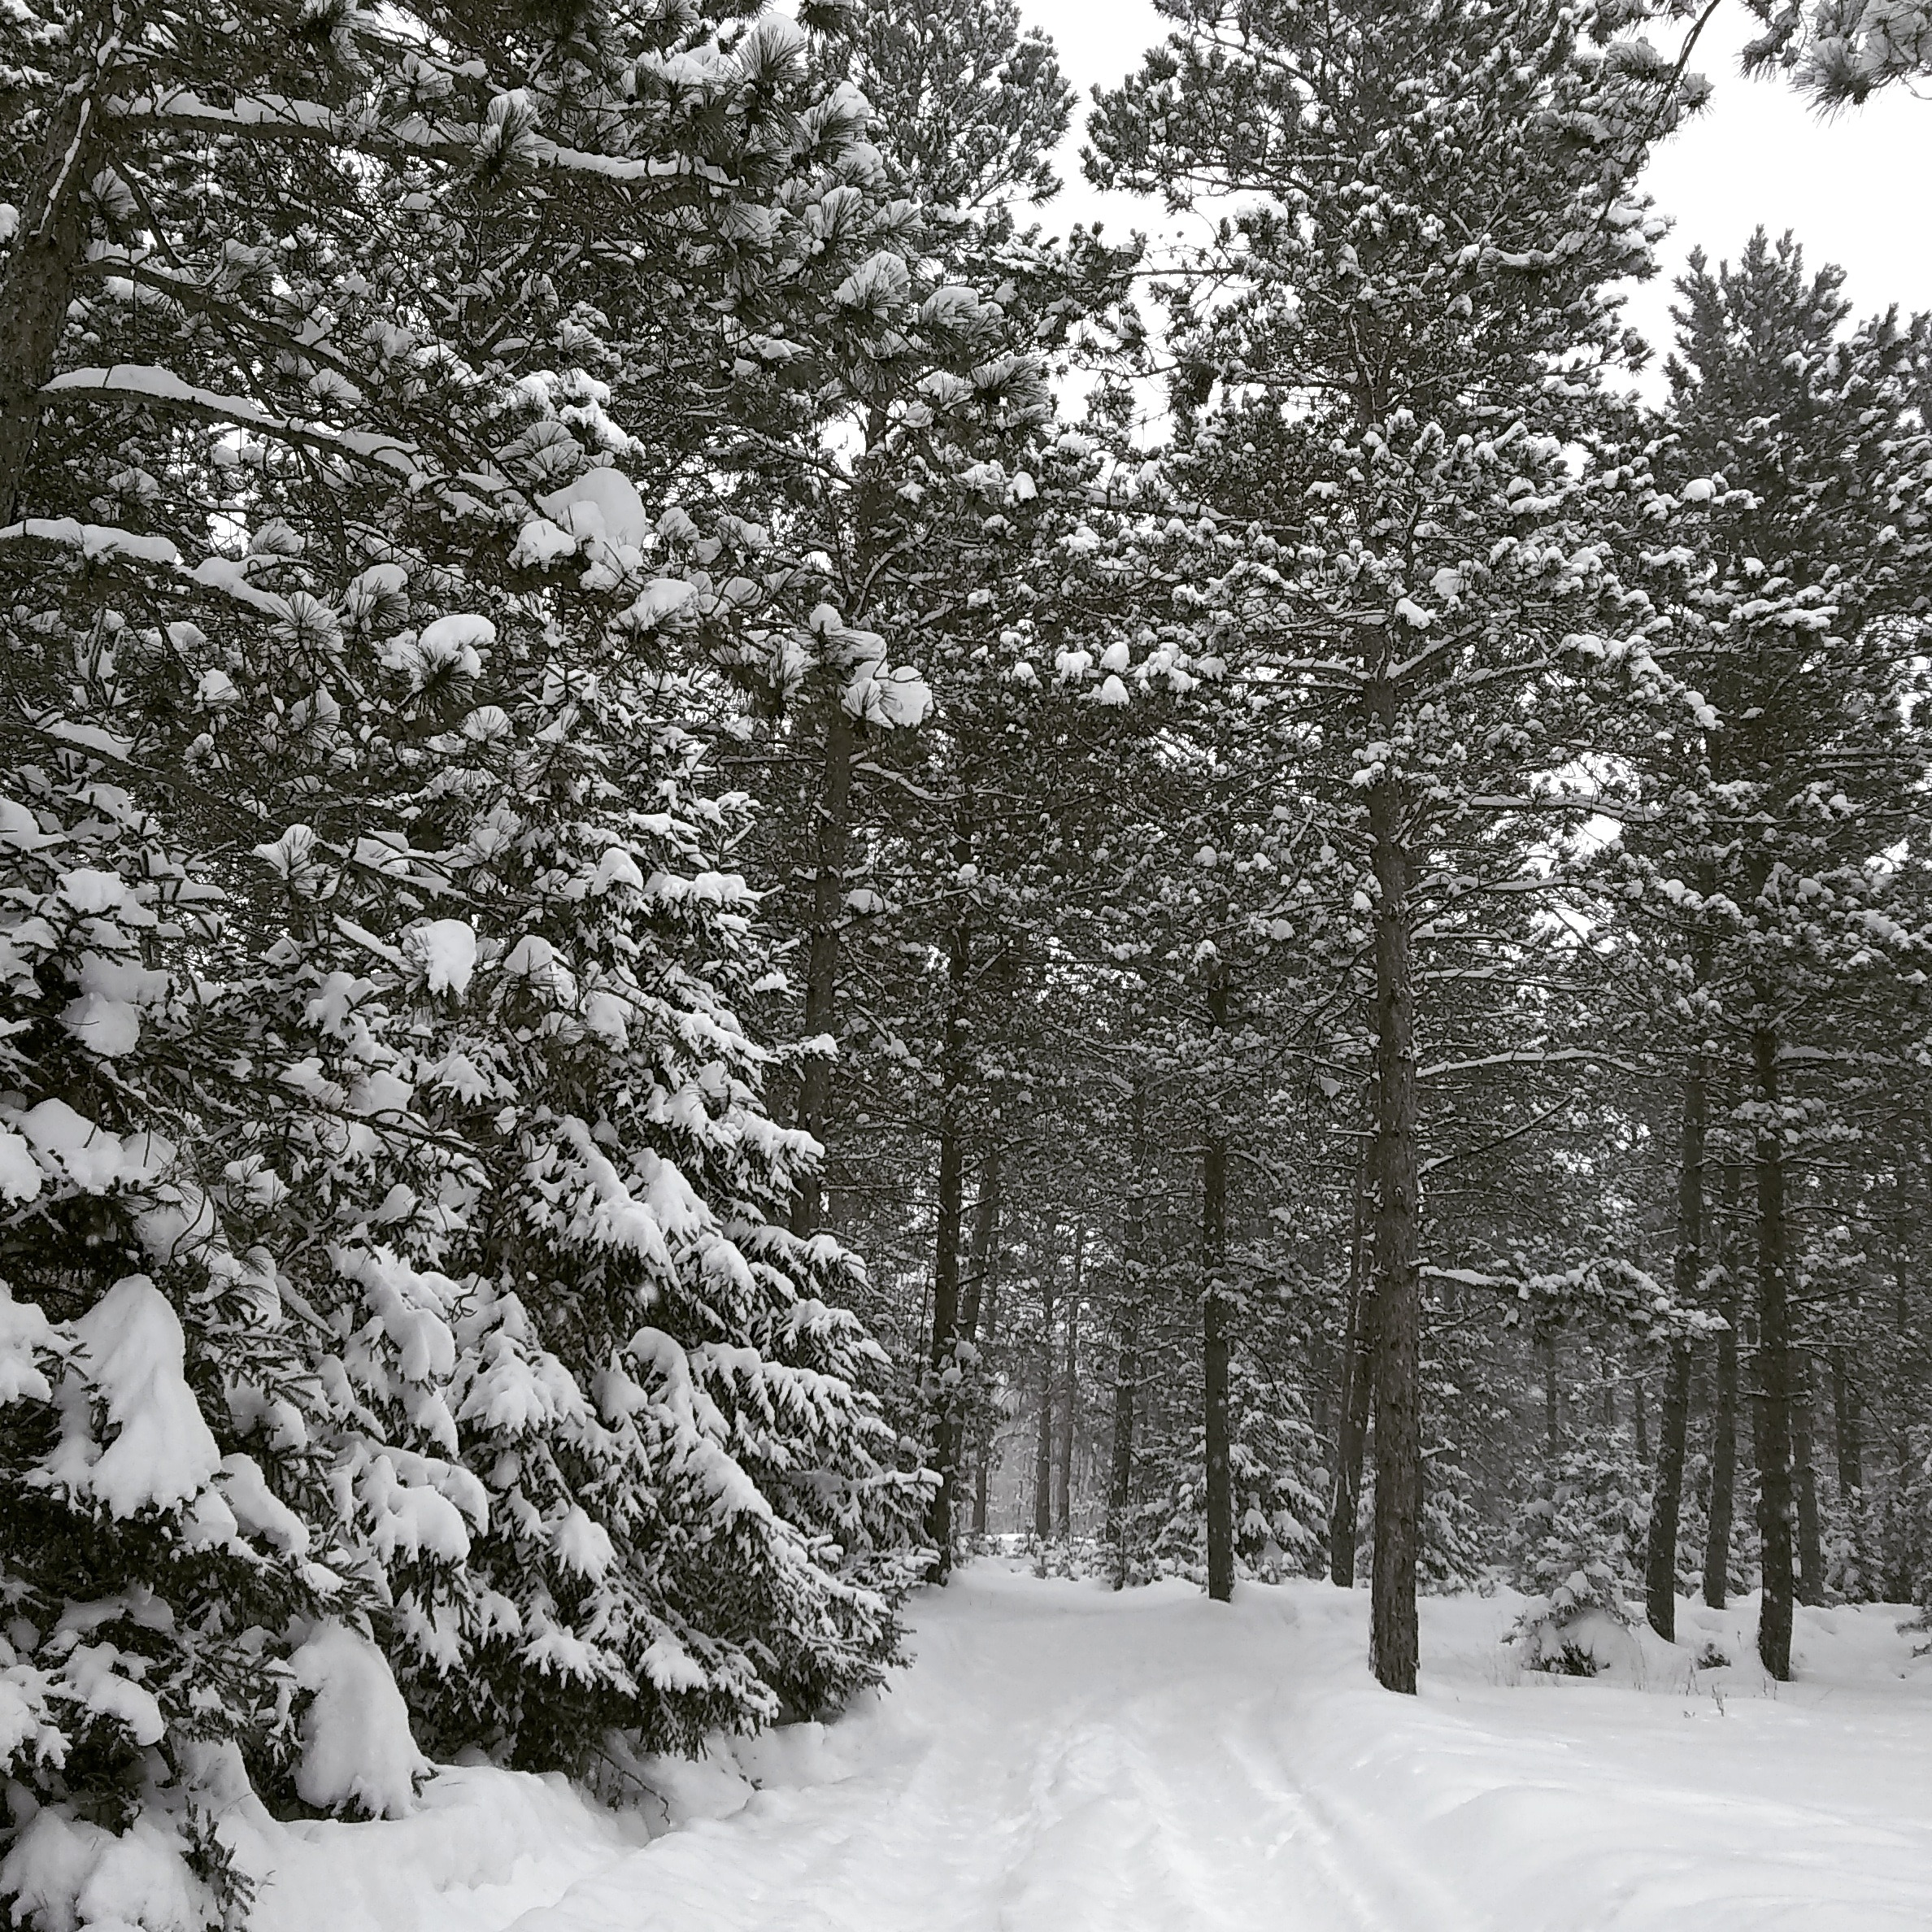 dfc1d130182 Snowmobile and Ski Trail Conditions - 2.7.2019 - Park Rapids